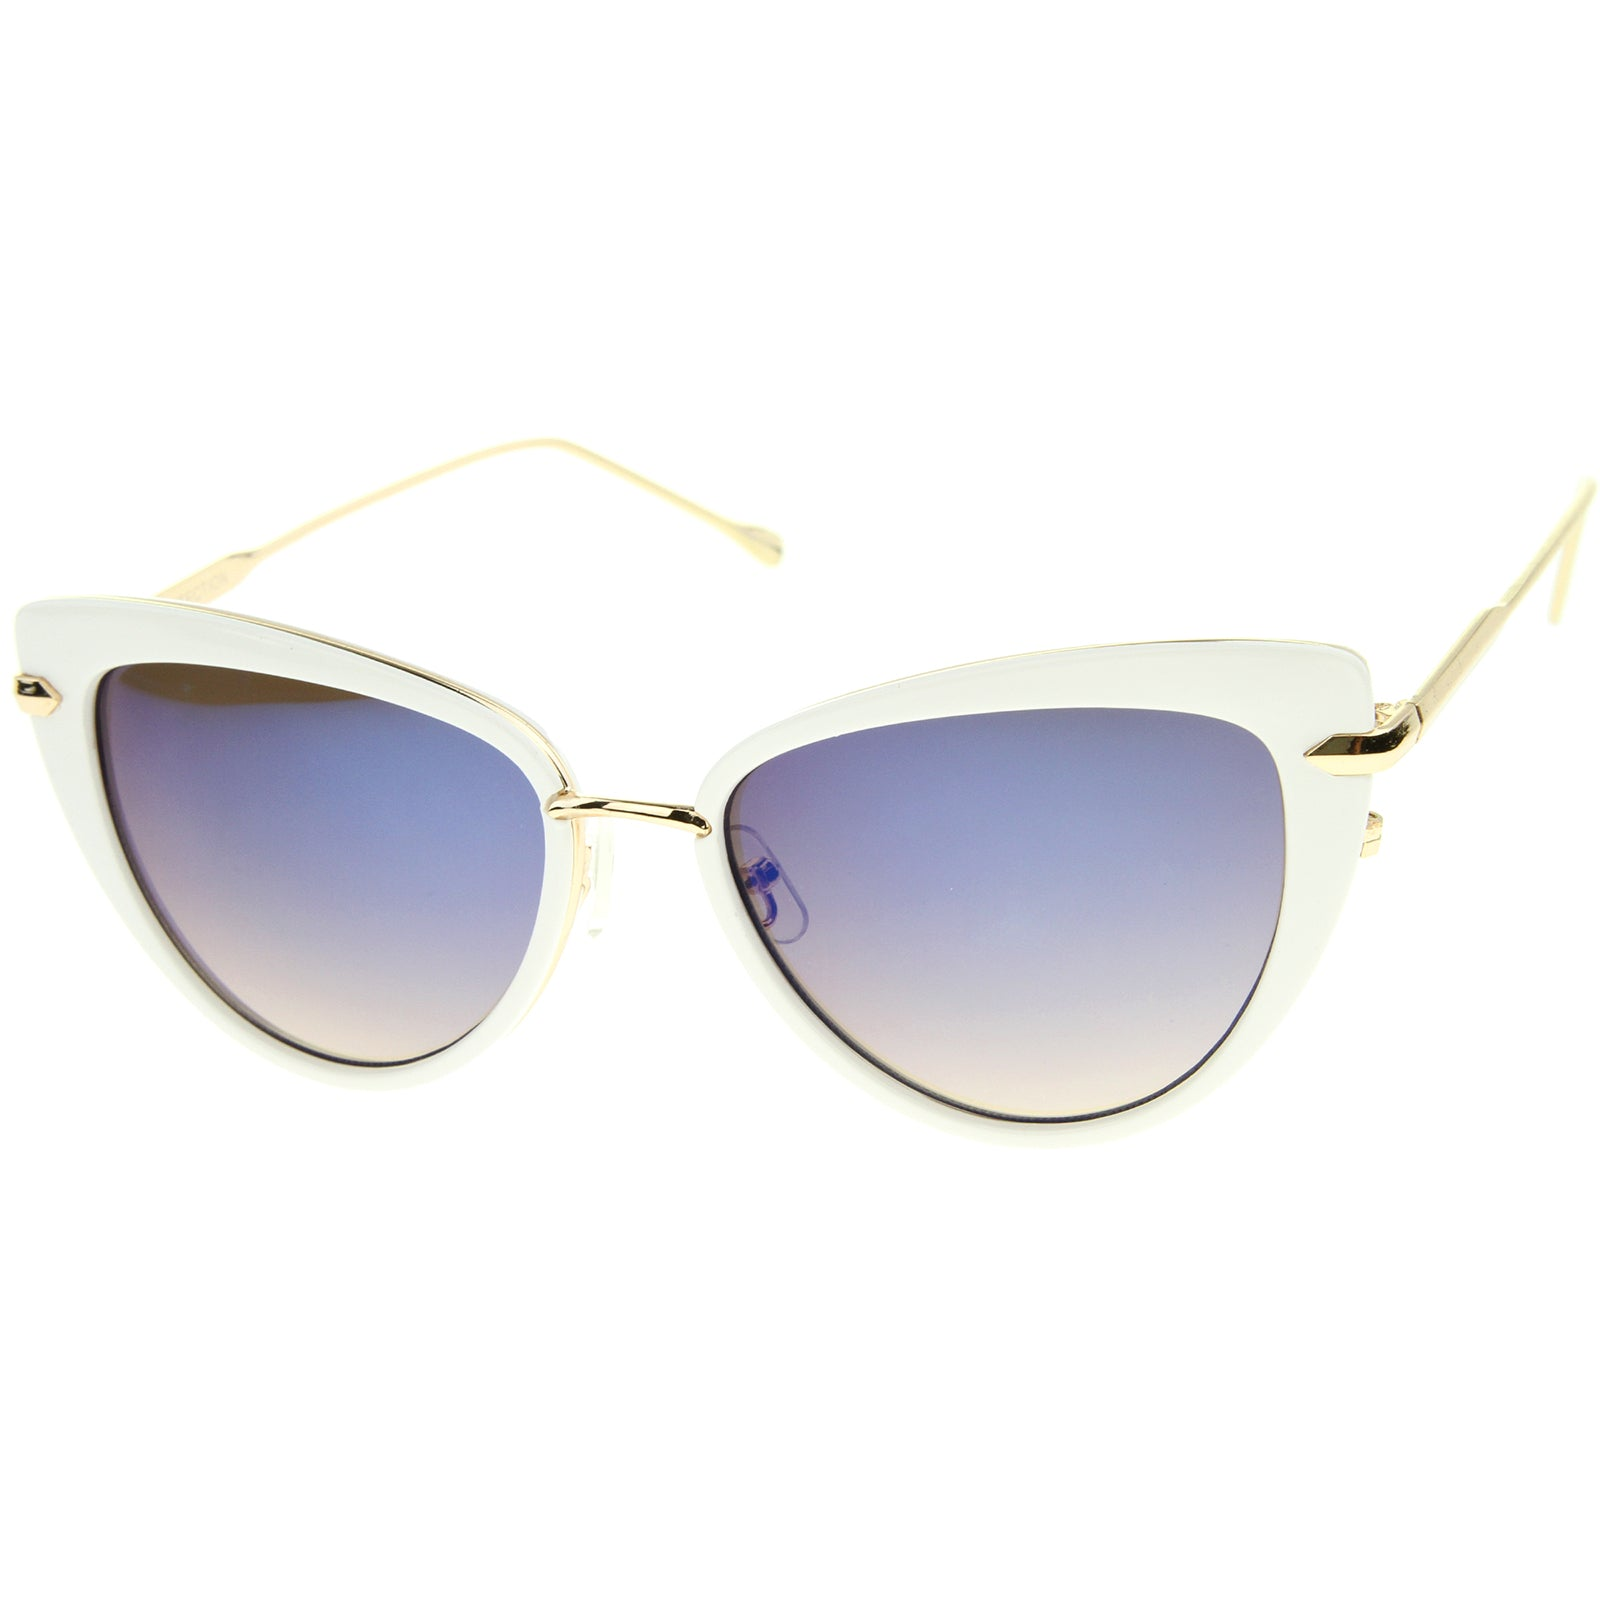 Women's High Fashion Metal Temple Super Cat Eye Sunglasses 55mm - sunglass.la - 10